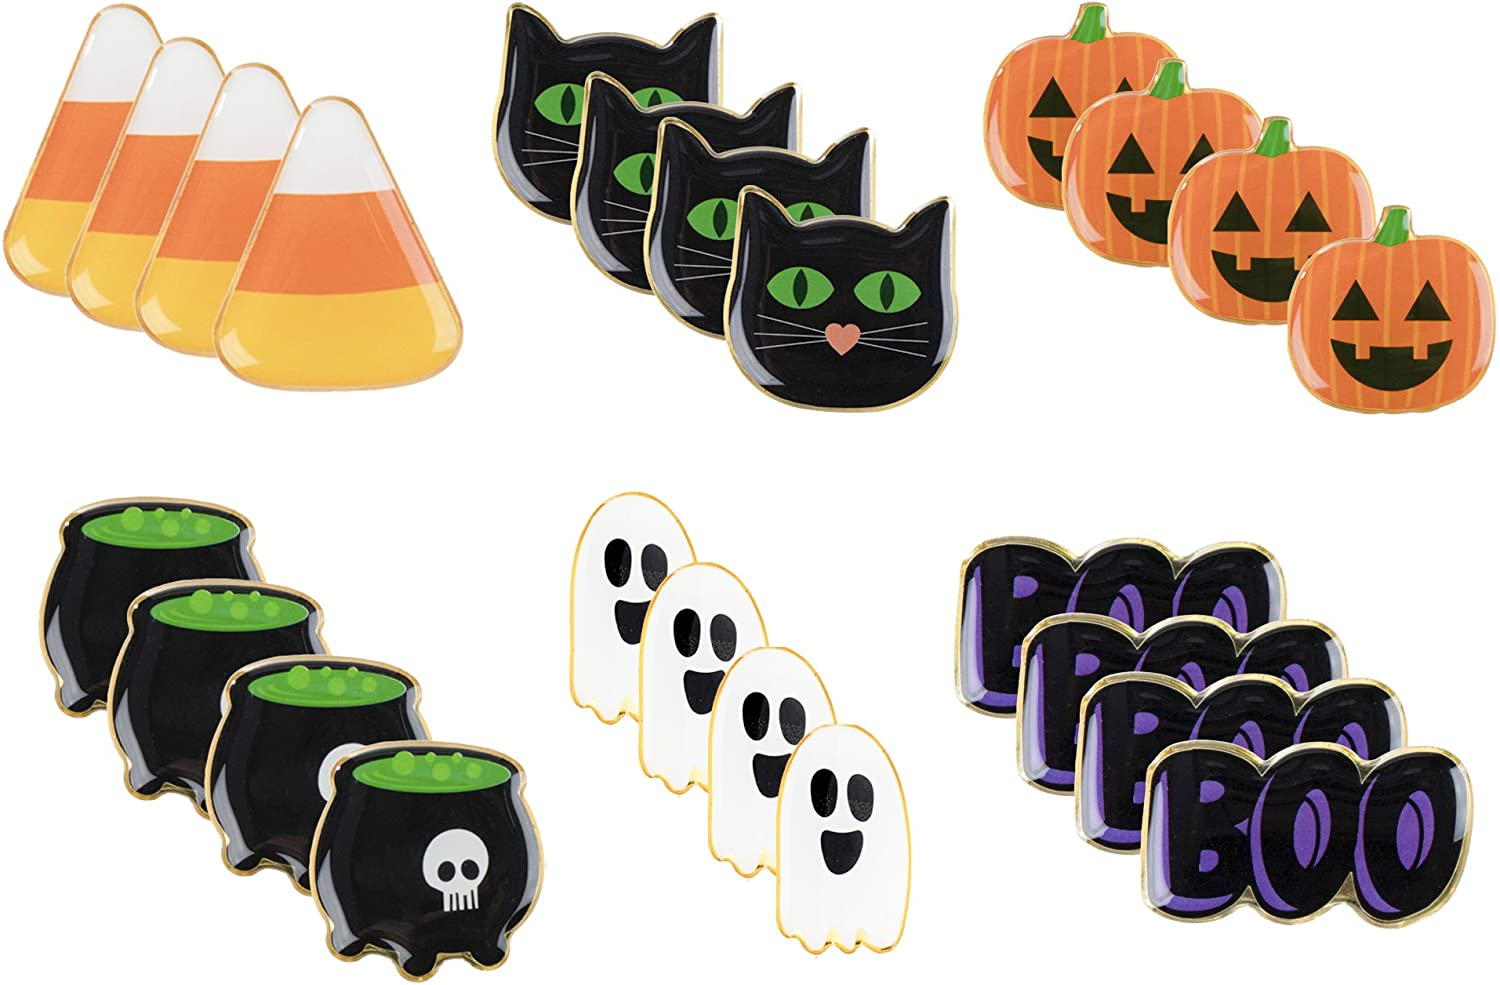 Halloween Pins - 24-Pack Enamel Pins, Lapel Pins for Halloween Costume Parties, Kids Party Favors, 6 Designs, 1.1 x 0.3 x 1.1 Inches: Clothing